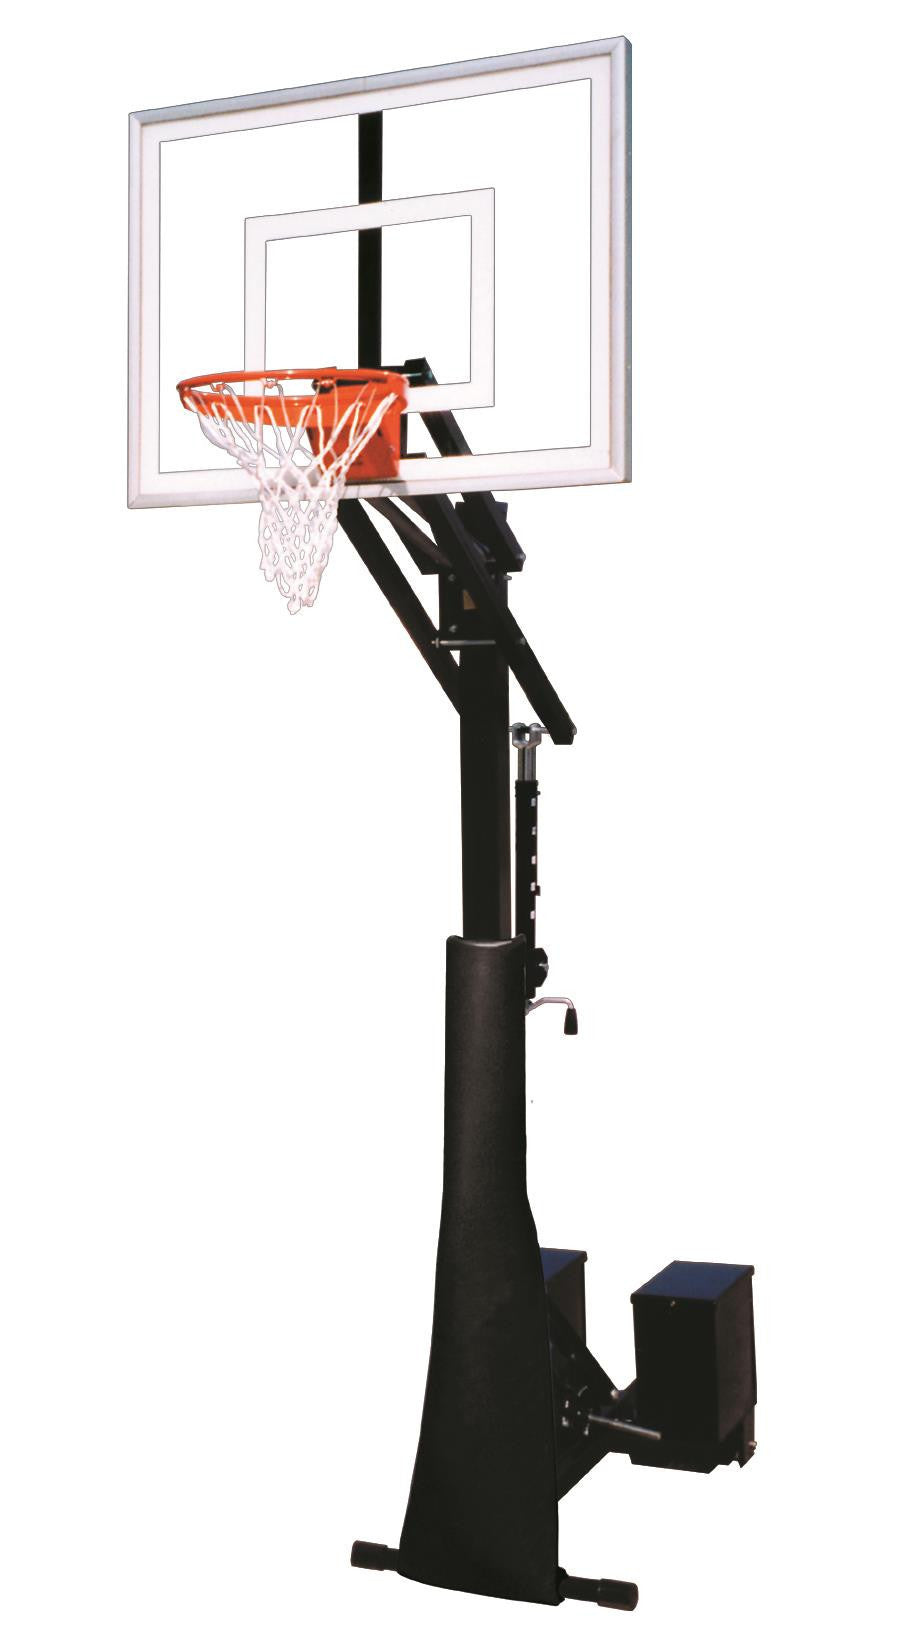 First Team Rolla Jam Turbo Adjustable Portable Basketball Hoop 54 inch Tempered Glass